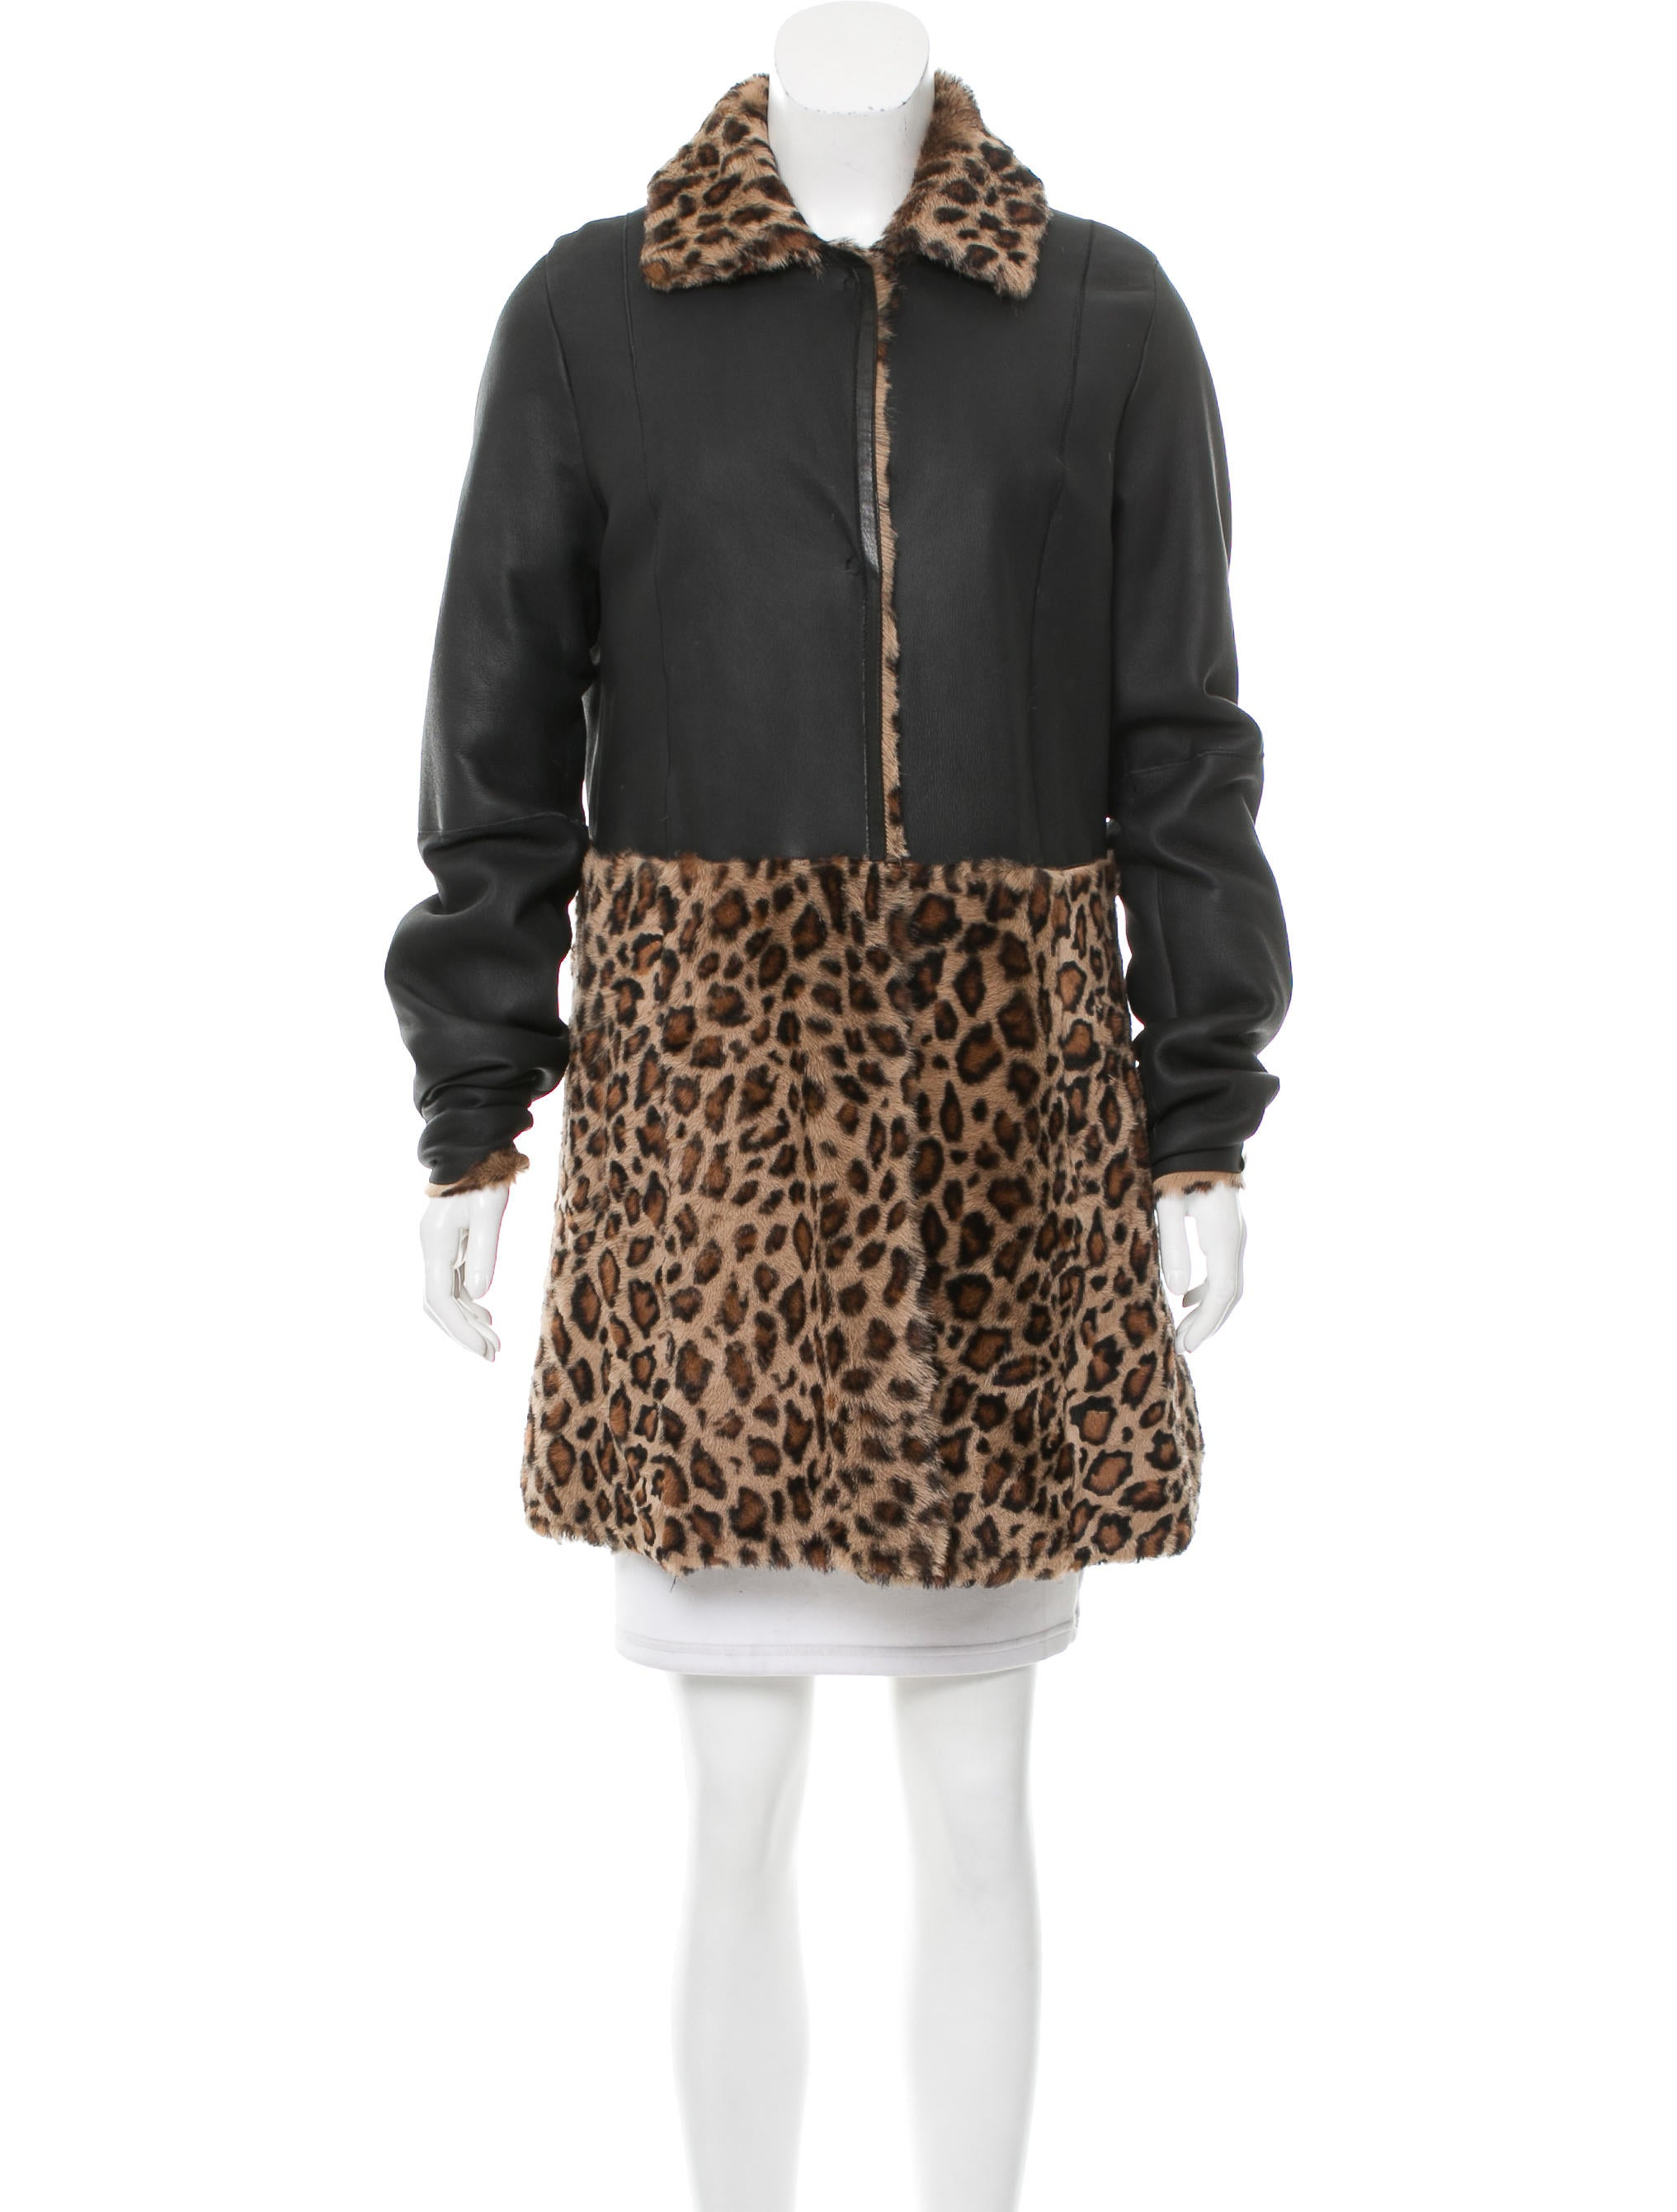 Moschino cheap and chic shearling knee length coat Inexpensive chic